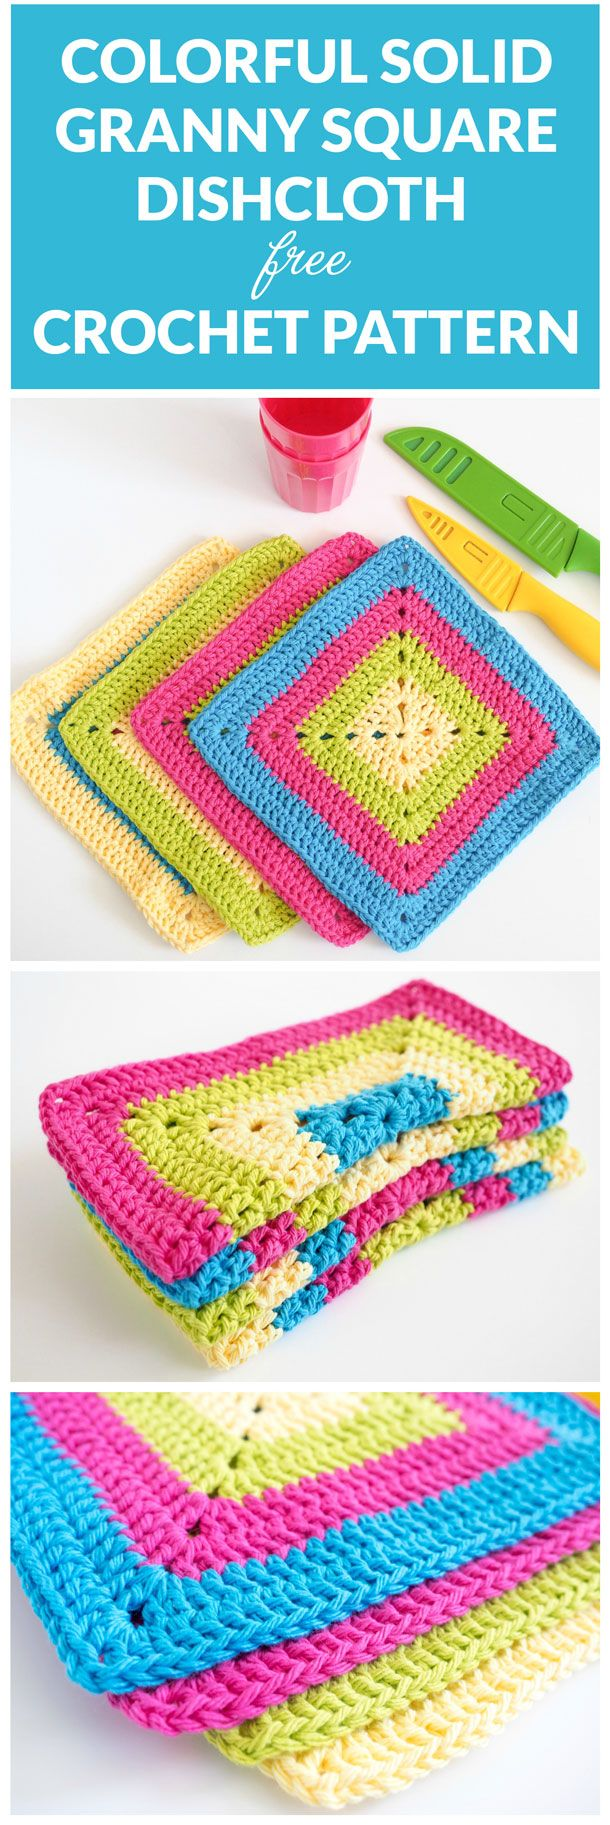 Colorful Solid Granny Square Dishcloth Crochet Pattern | Topflappen ...